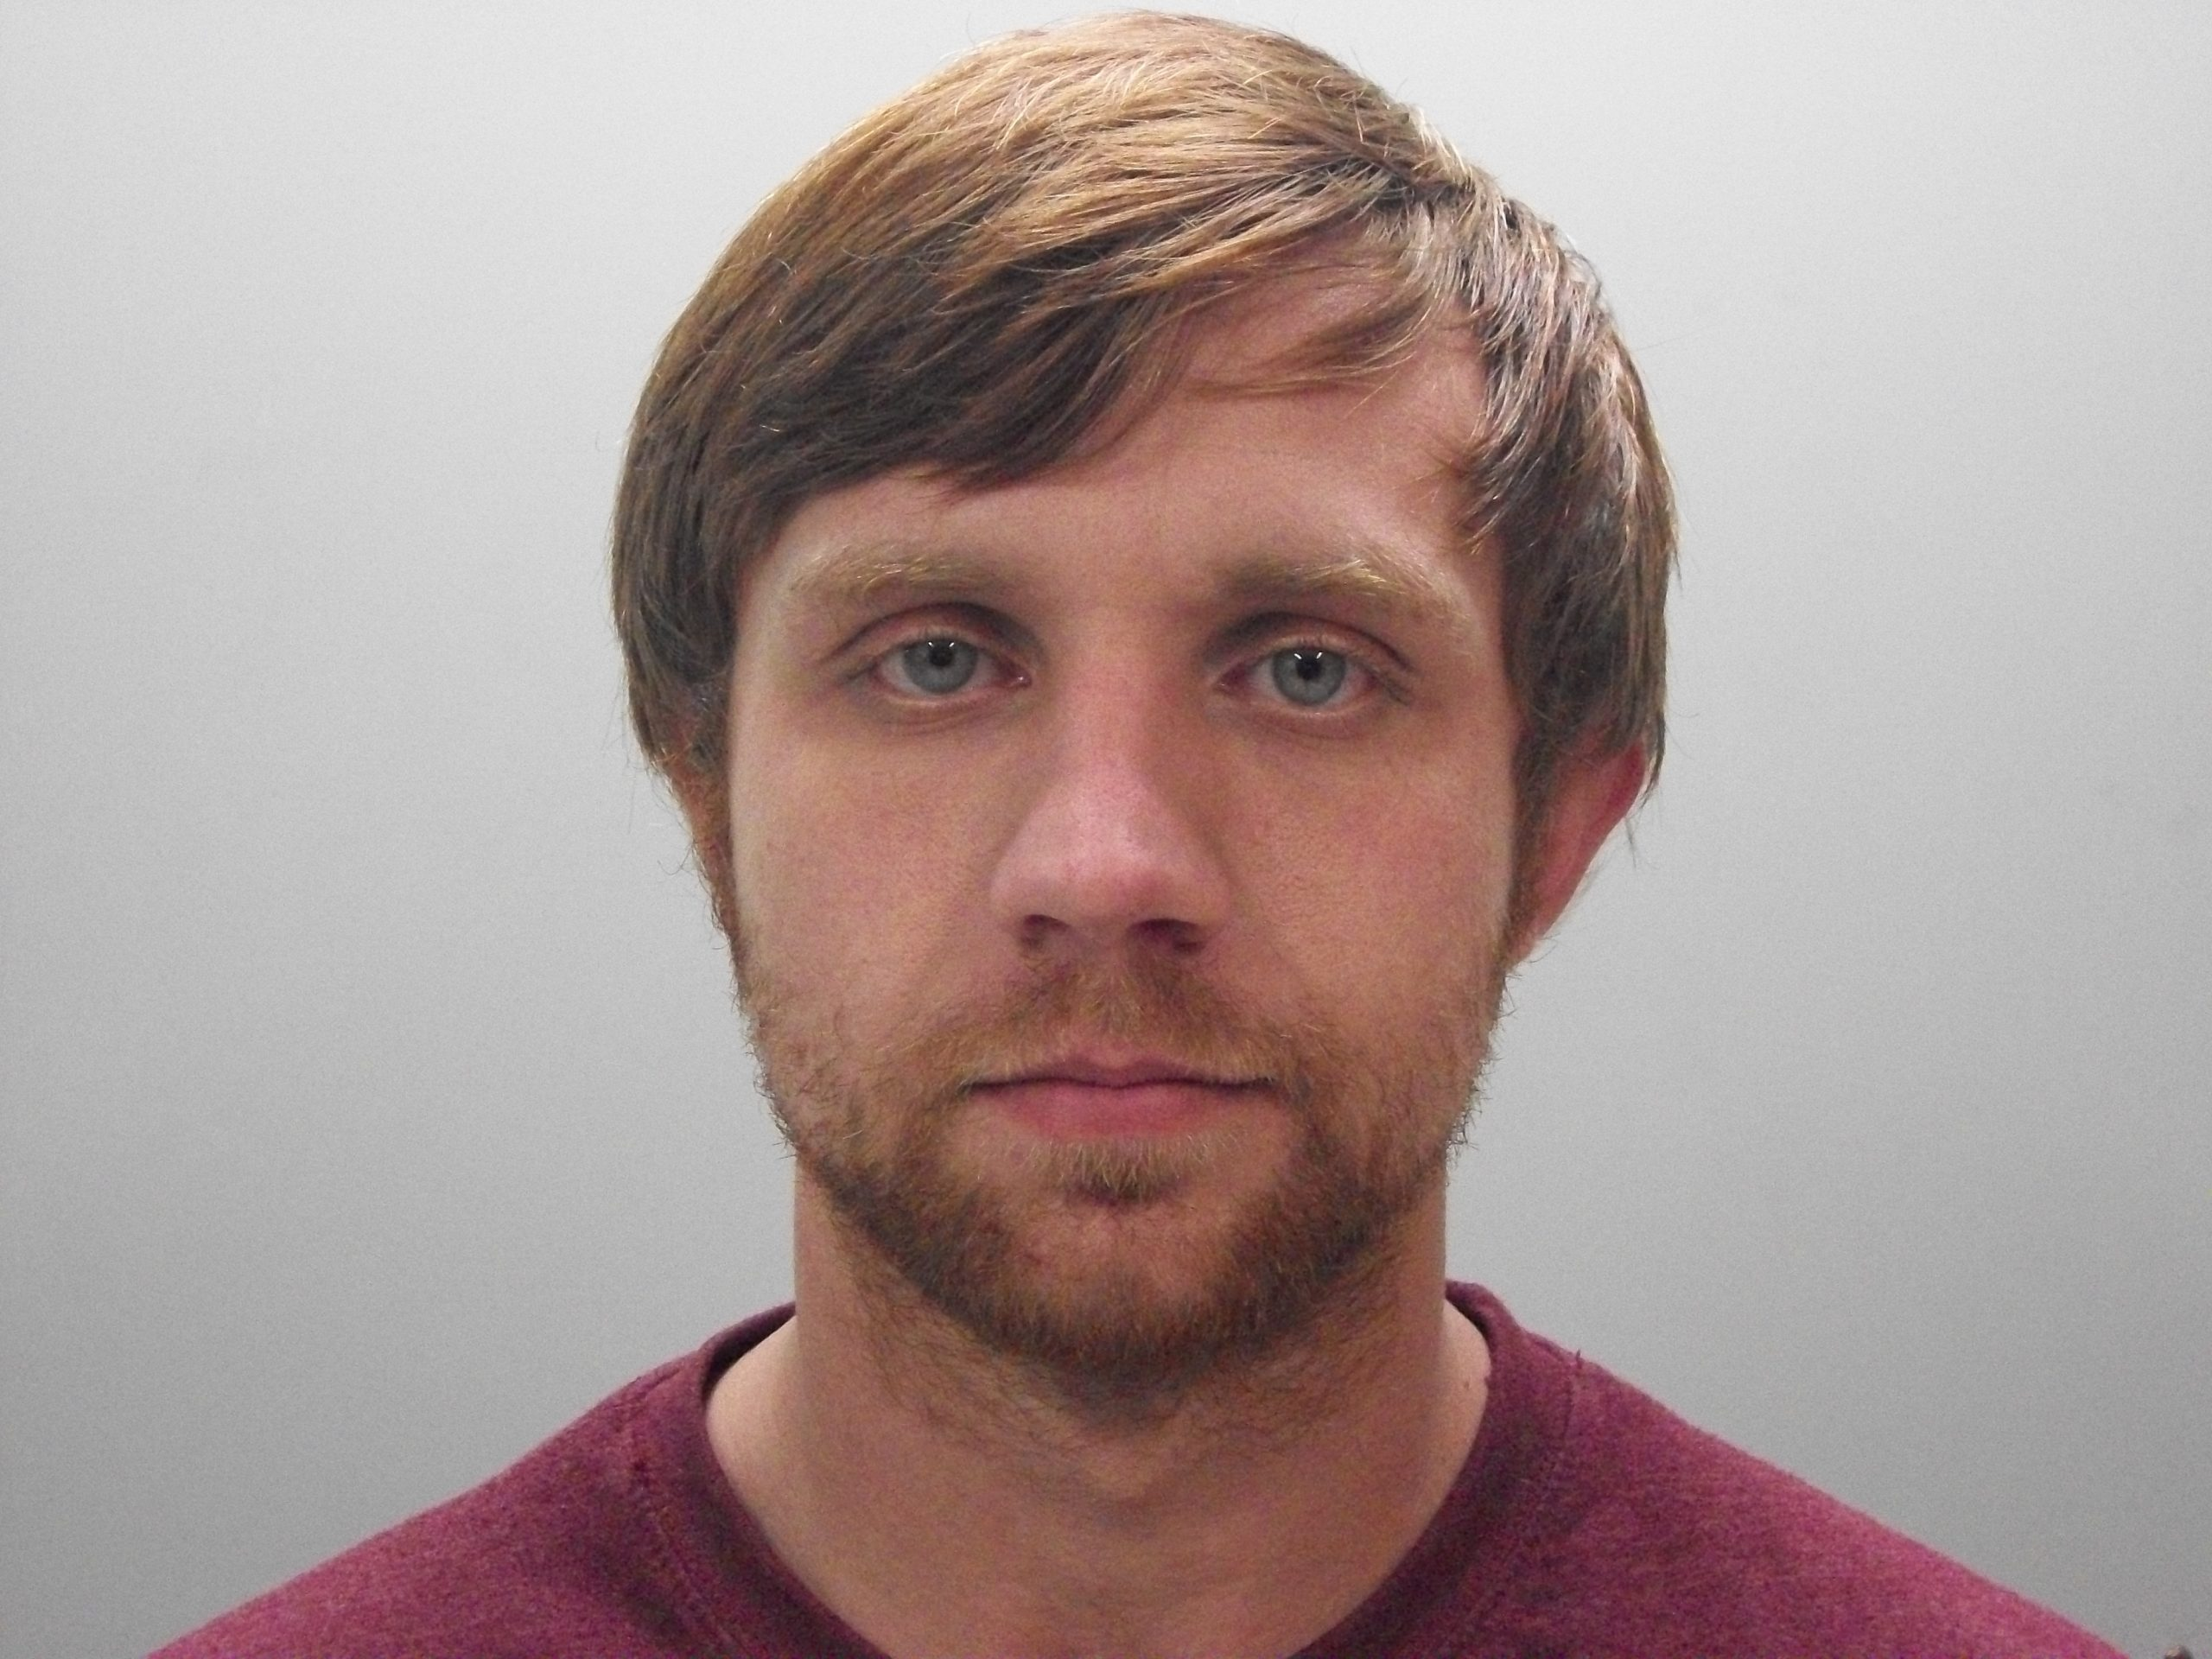 ANDREW DEAN GUILL (WCSO)